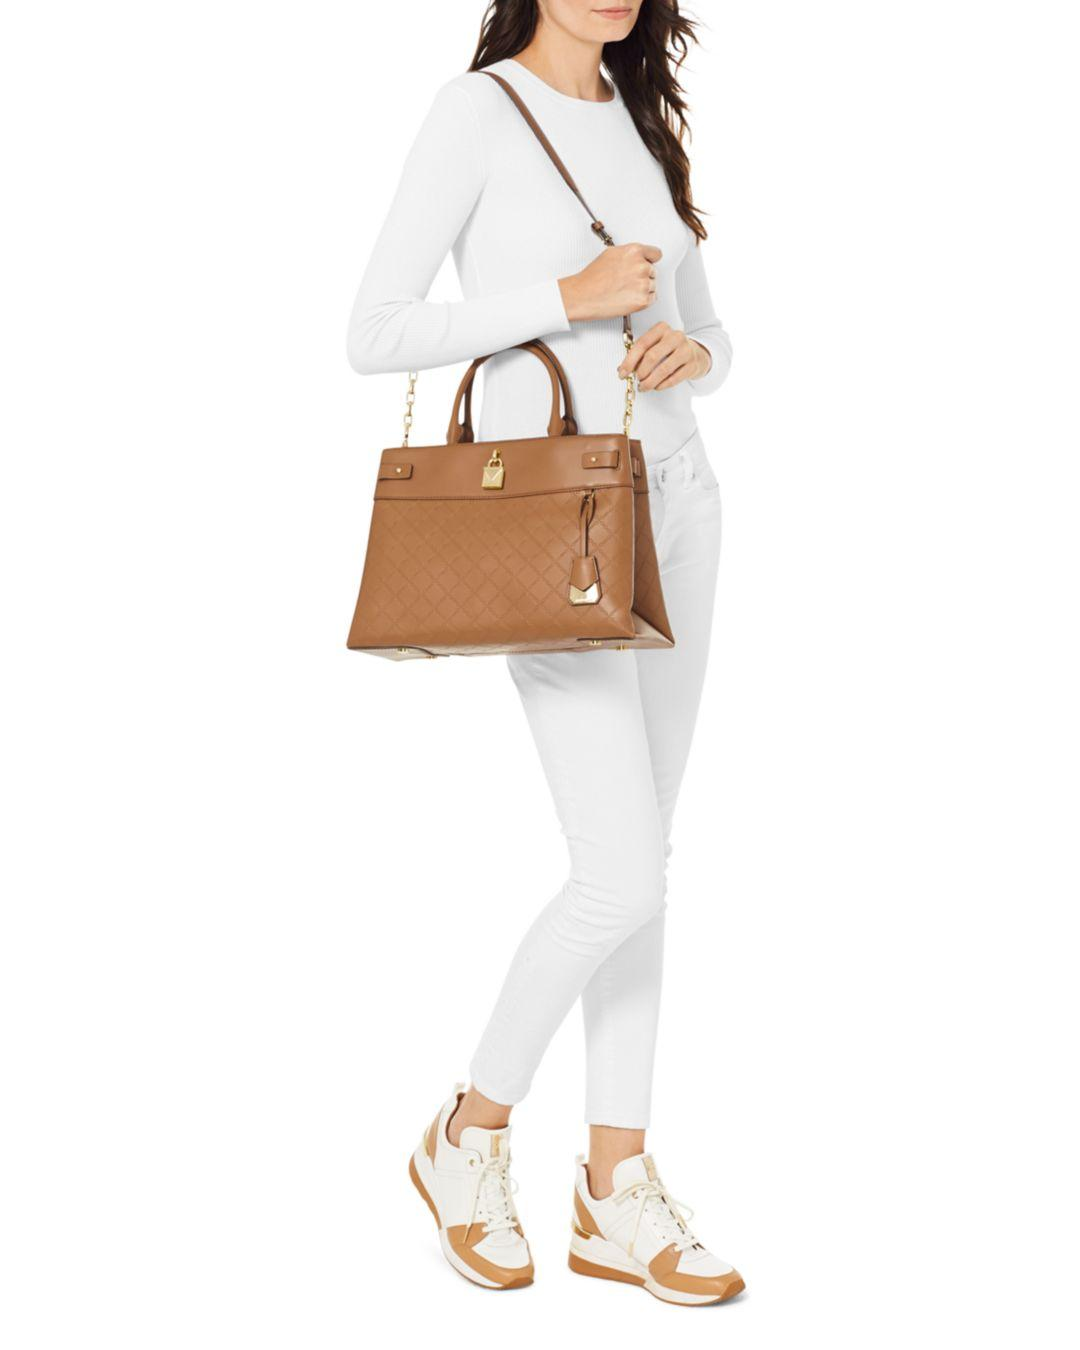 acfd30f39d8f2 Lyst - MICHAEL Michael Kors Large Gramercy Leather Satchel